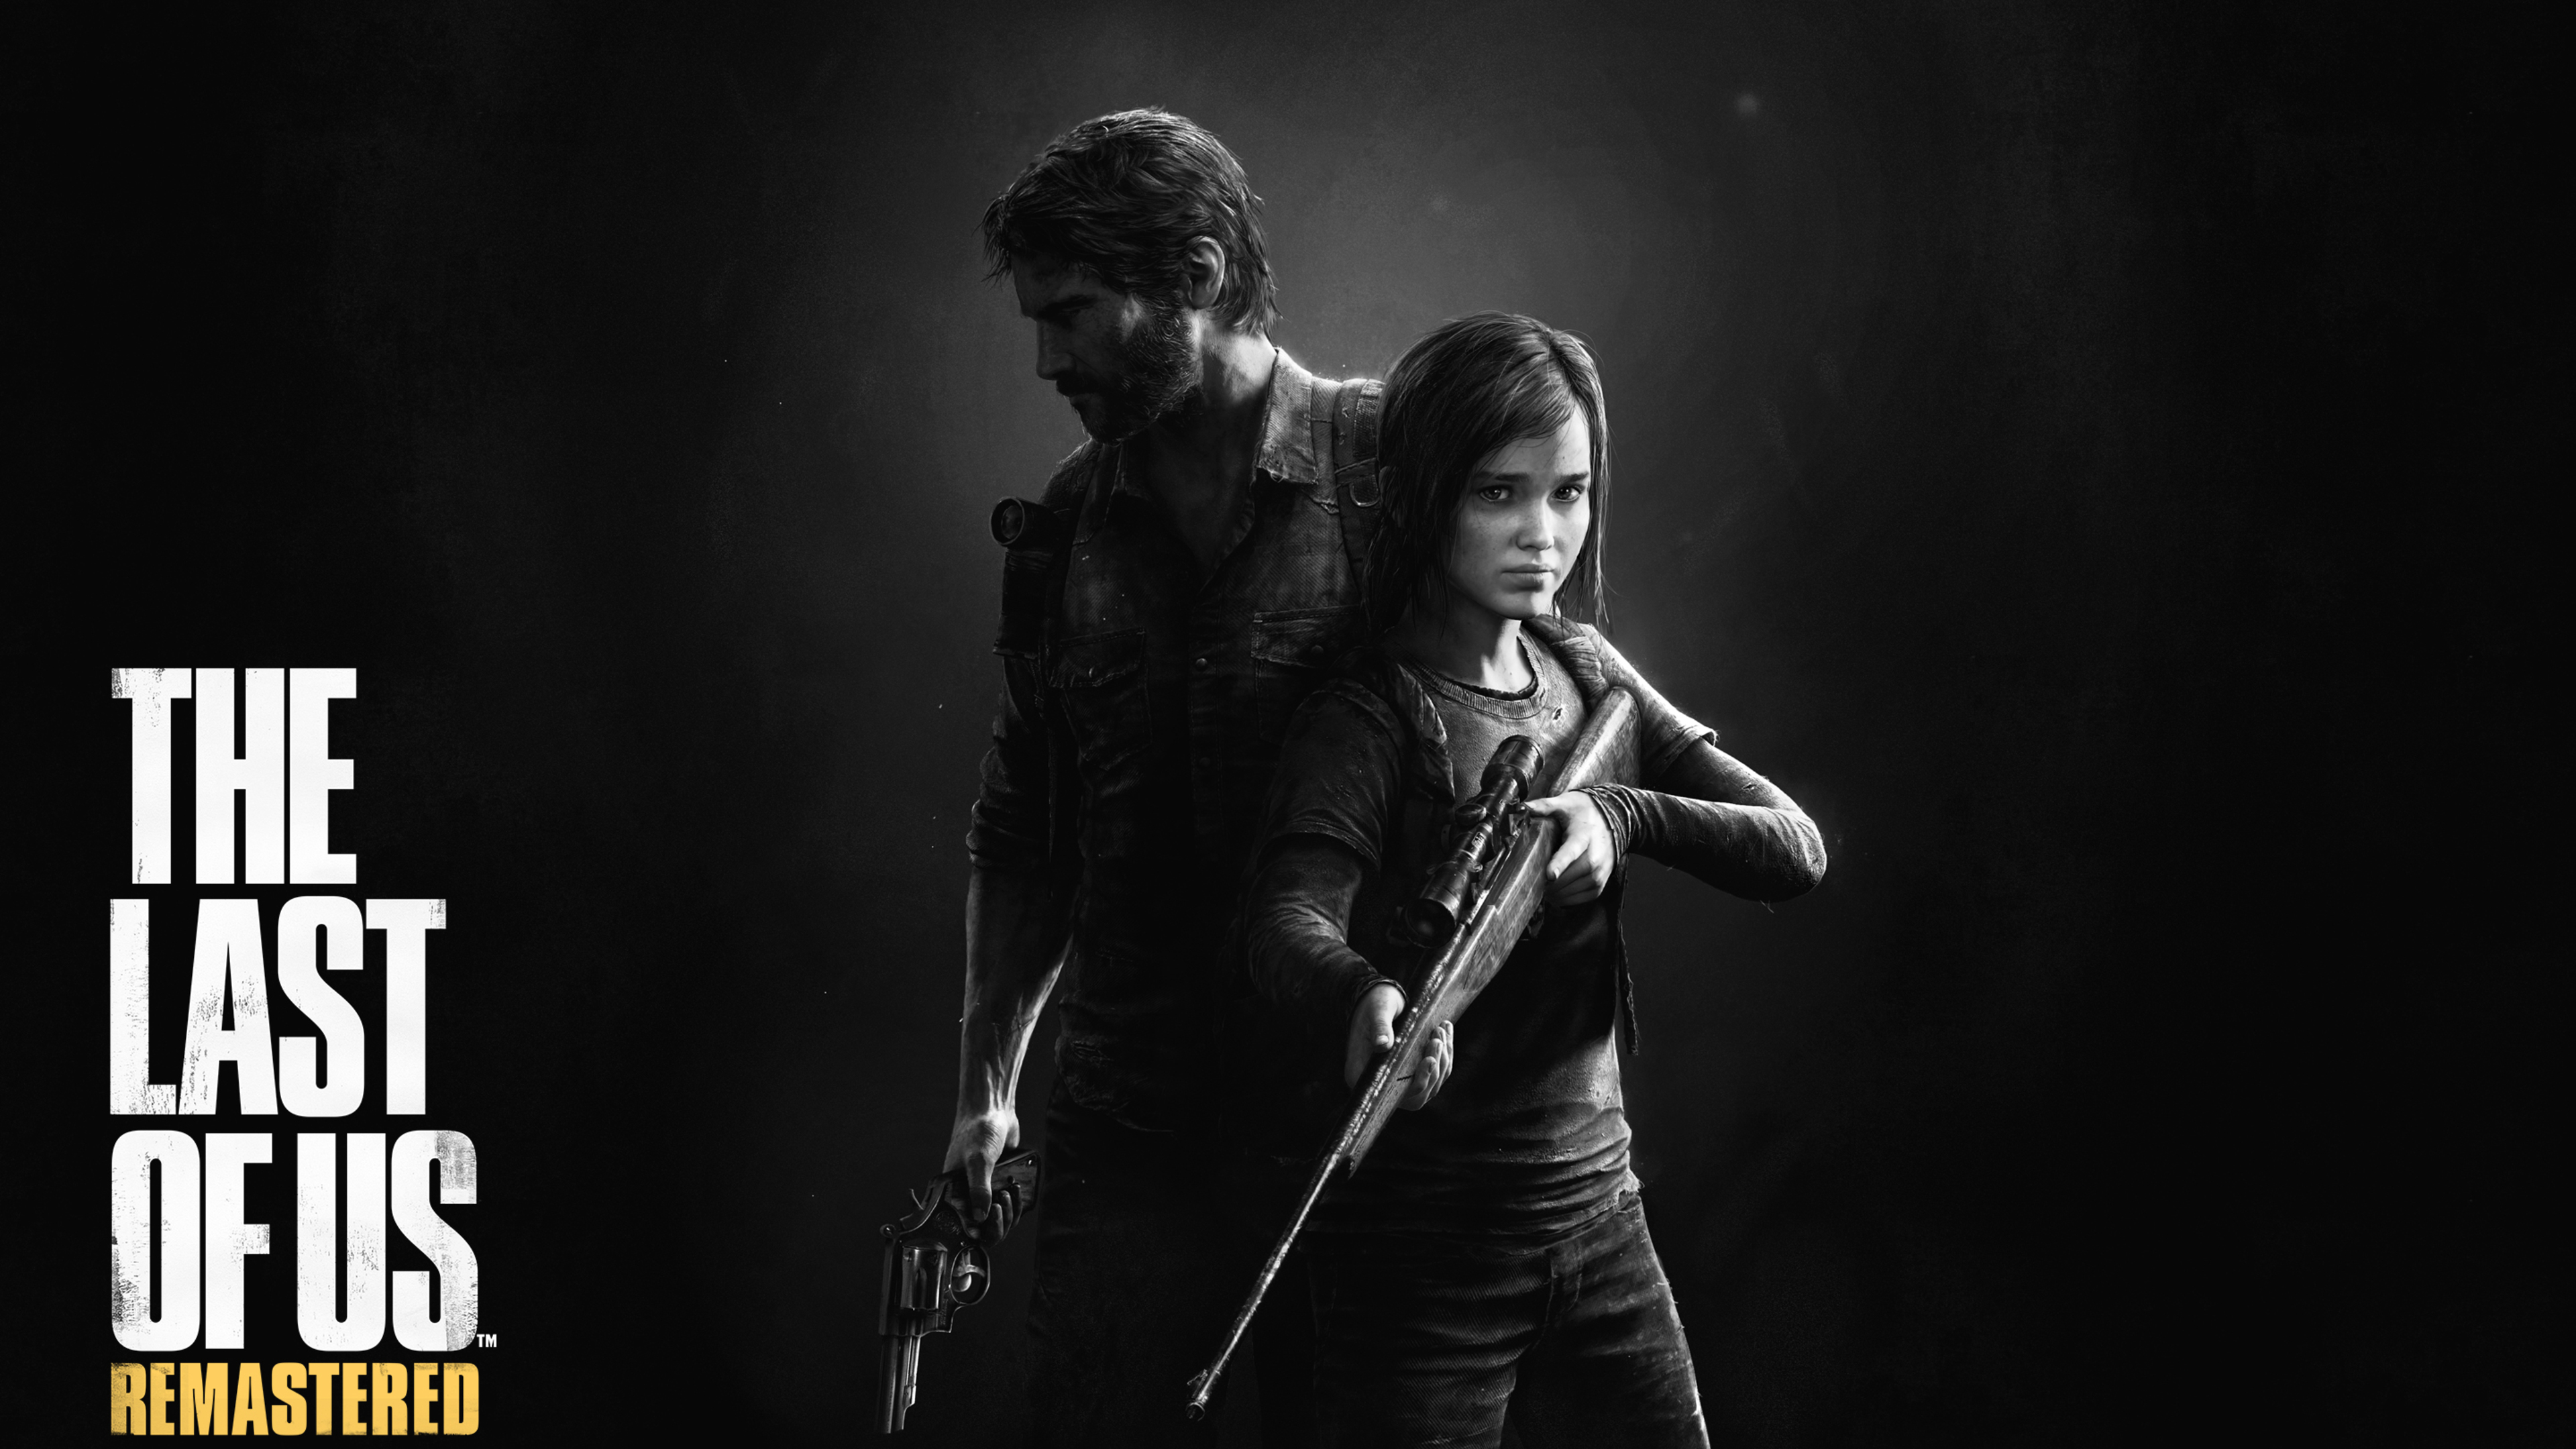 the last of us remastered game 1535967234 - The Last Of Us Remastered Game - the last of us wallpapers, games wallpapers, digital art wallpapers, art wallpapers